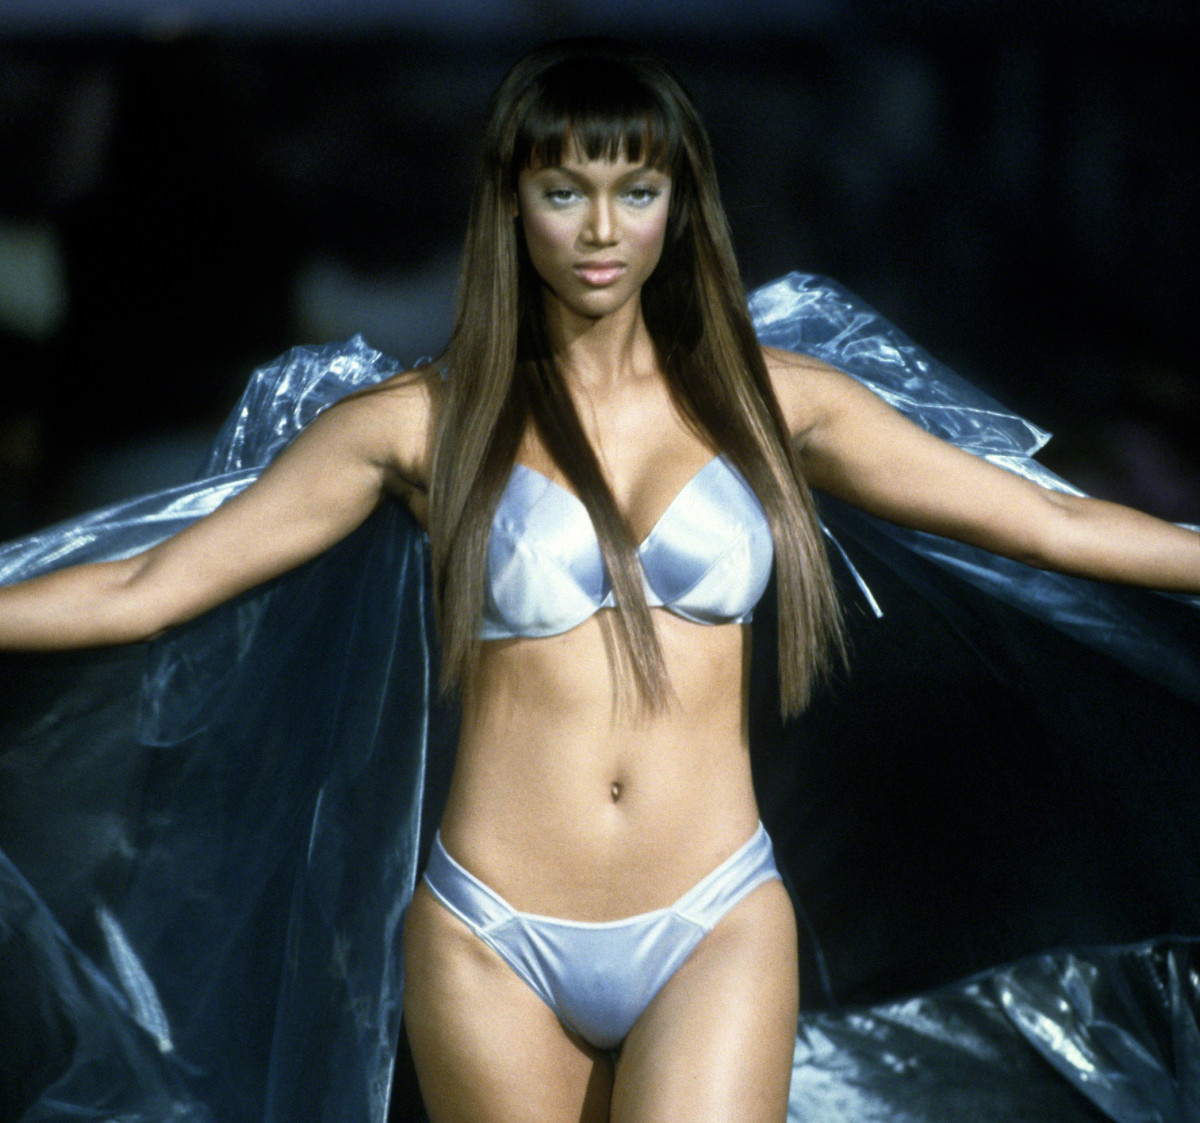 49e8752906 Naomi campbell and black models who owned the runway biography jpg  1200x1123 Tyra banks lingerie